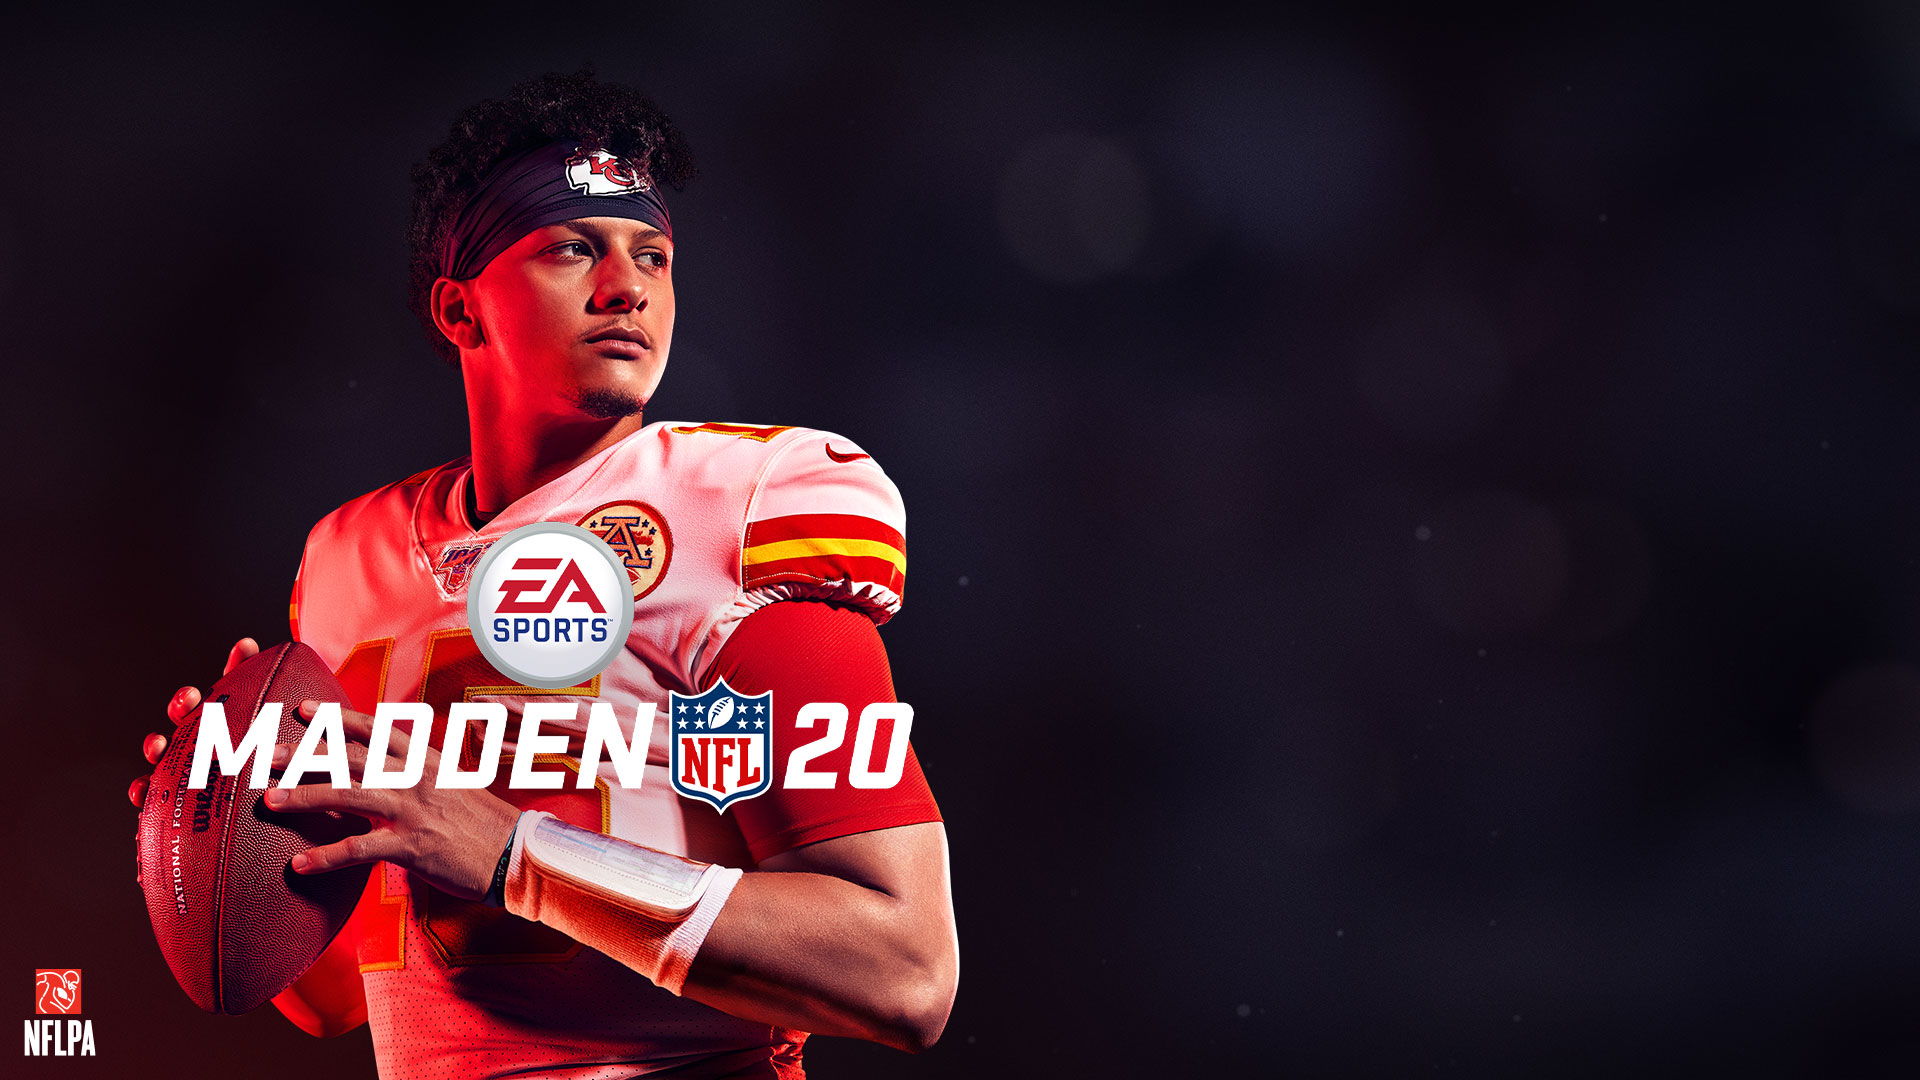 Madden NFL 20, NFLPA logo, Mahomes 2, Kansas City Chiefs, Kansas City Chiefs player Patrick Mahomes the second holding on to his collar padding